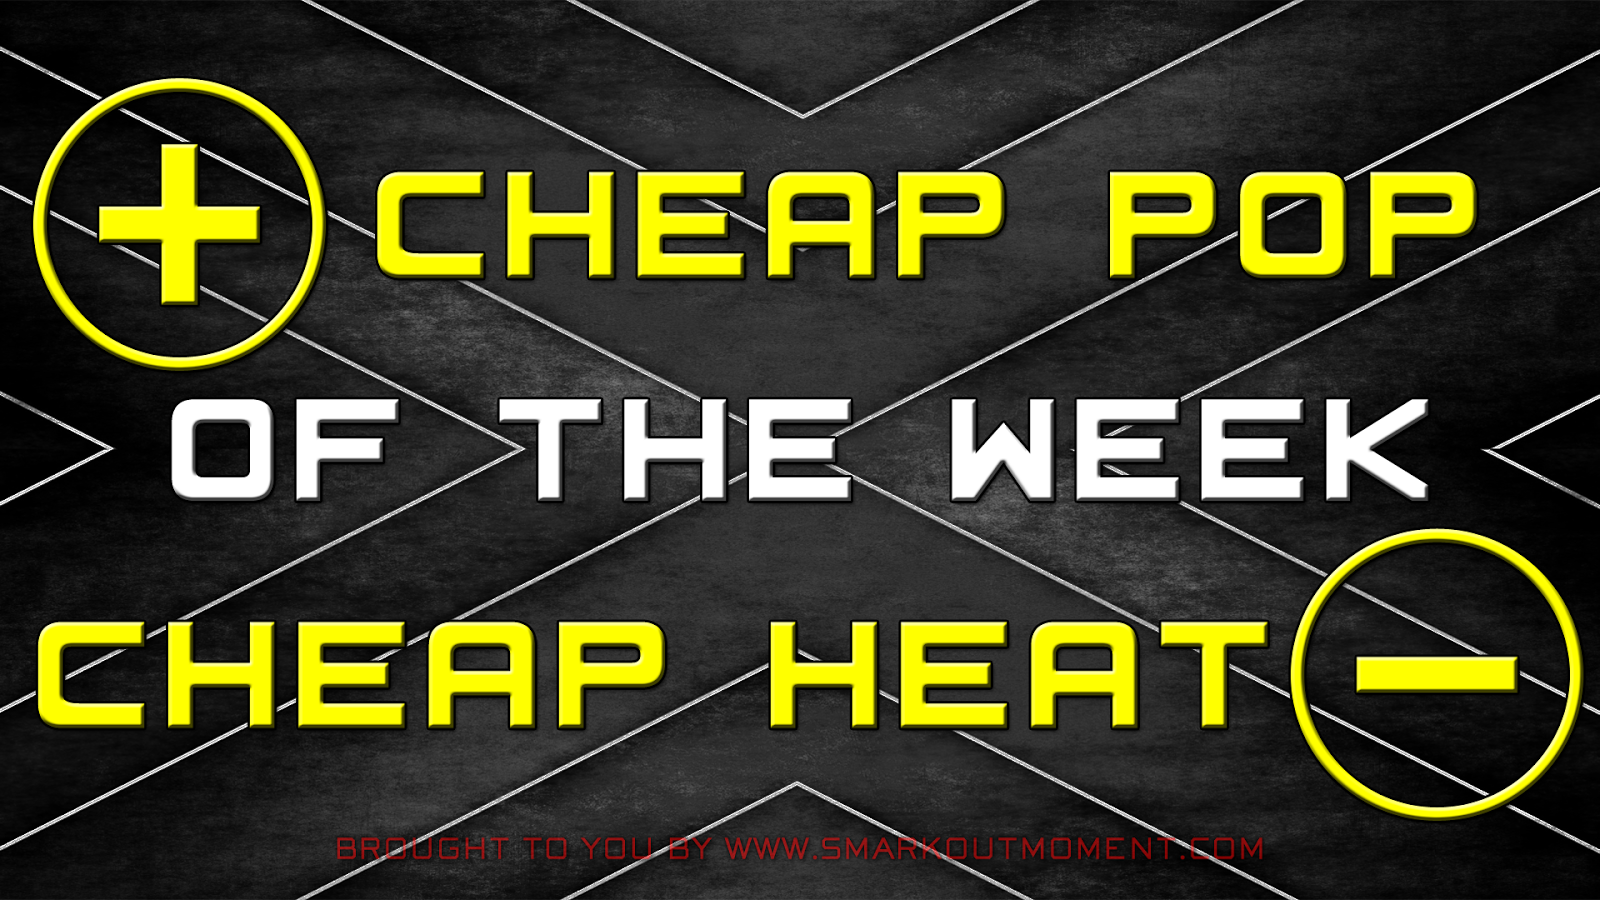 babyface Cheap Pop professional wrestling WWE Cheap Heat heel